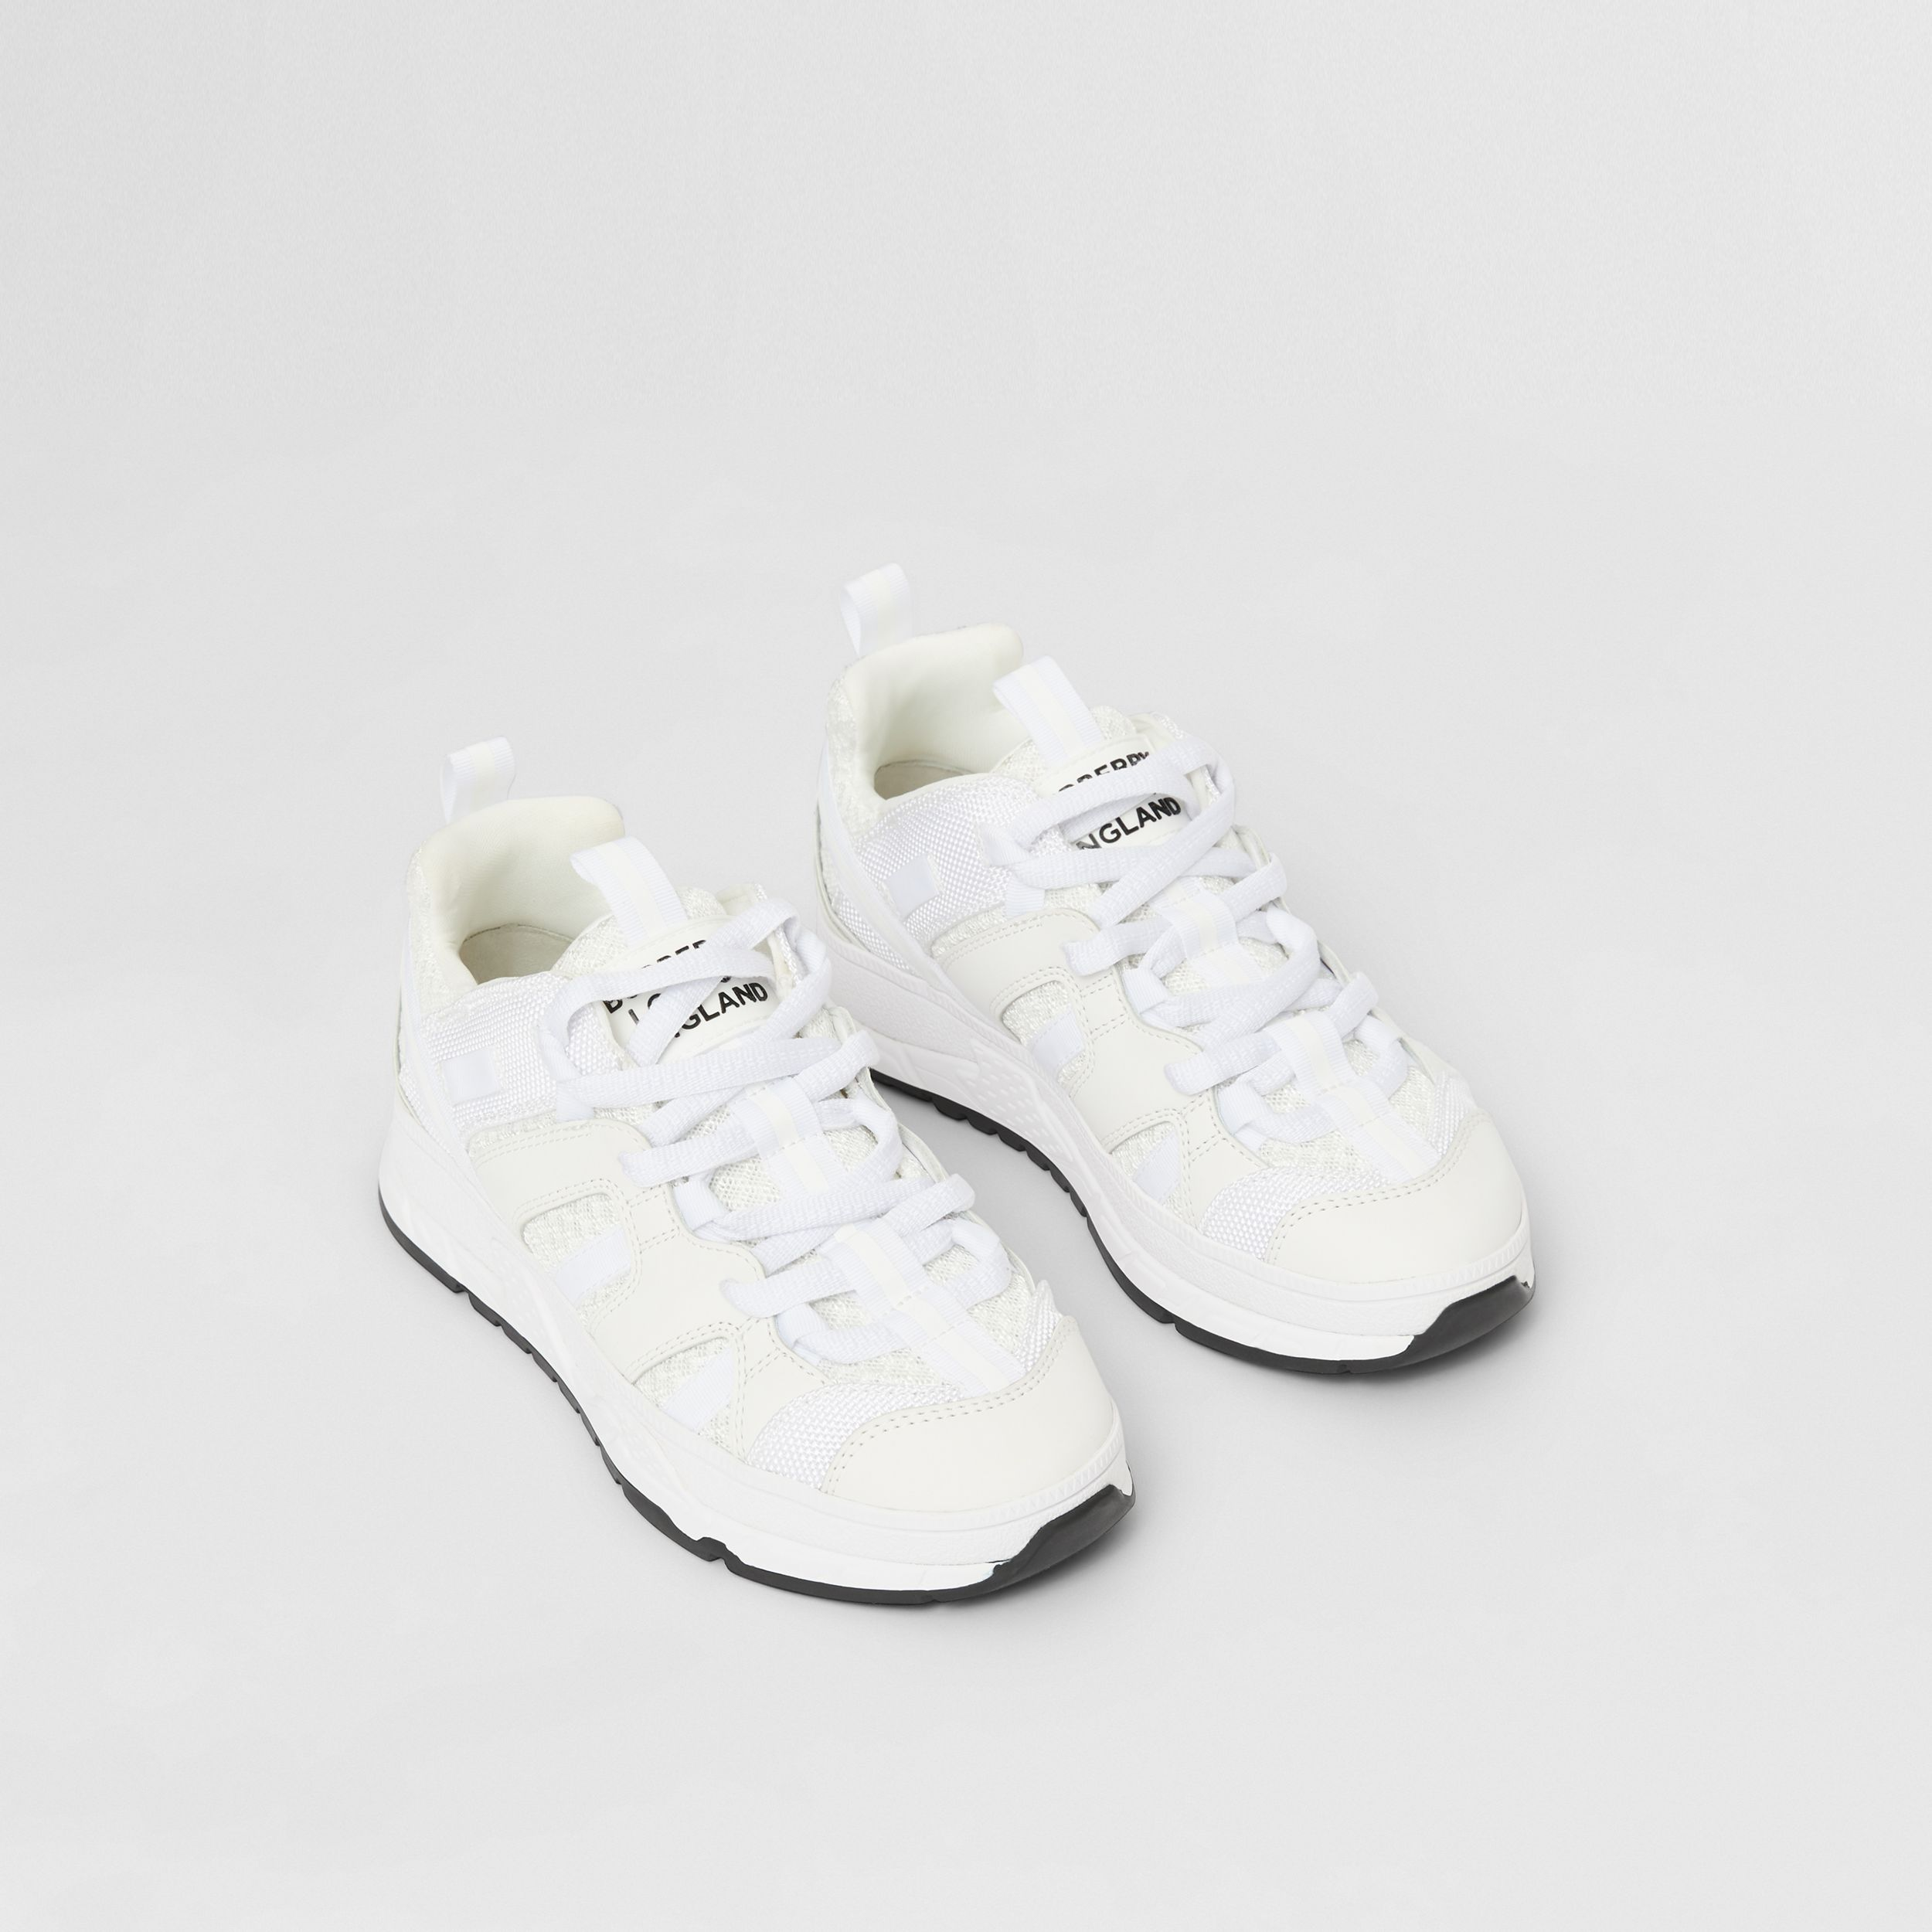 Mesh and Nubuck Union Sneakers in Optic White - Children | Burberry Hong Kong S.A.R. - 1